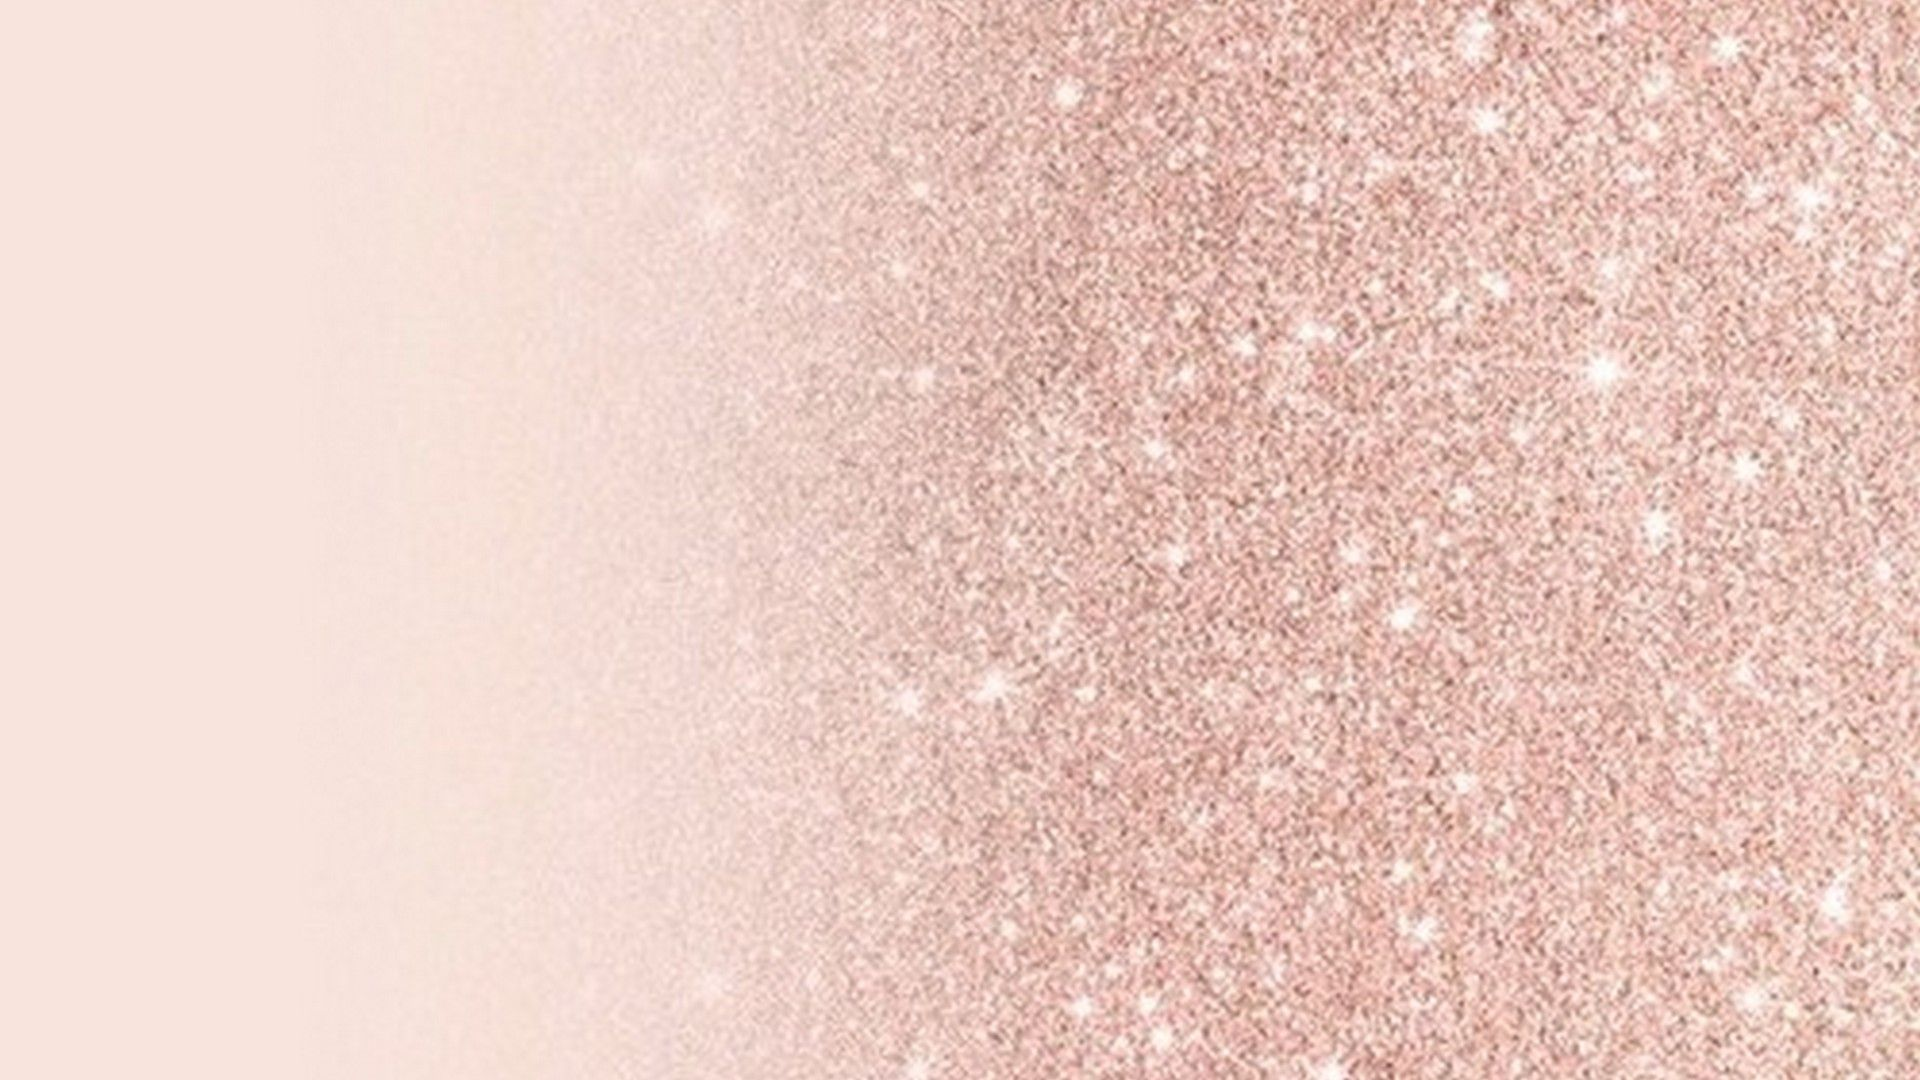 Wallpaper Rose Gold Glitter Desktop Best Hd Wallpapers Rose Gold Glitter Wallpaper Rose Gold Aesthetic Gold Wallpaper Background